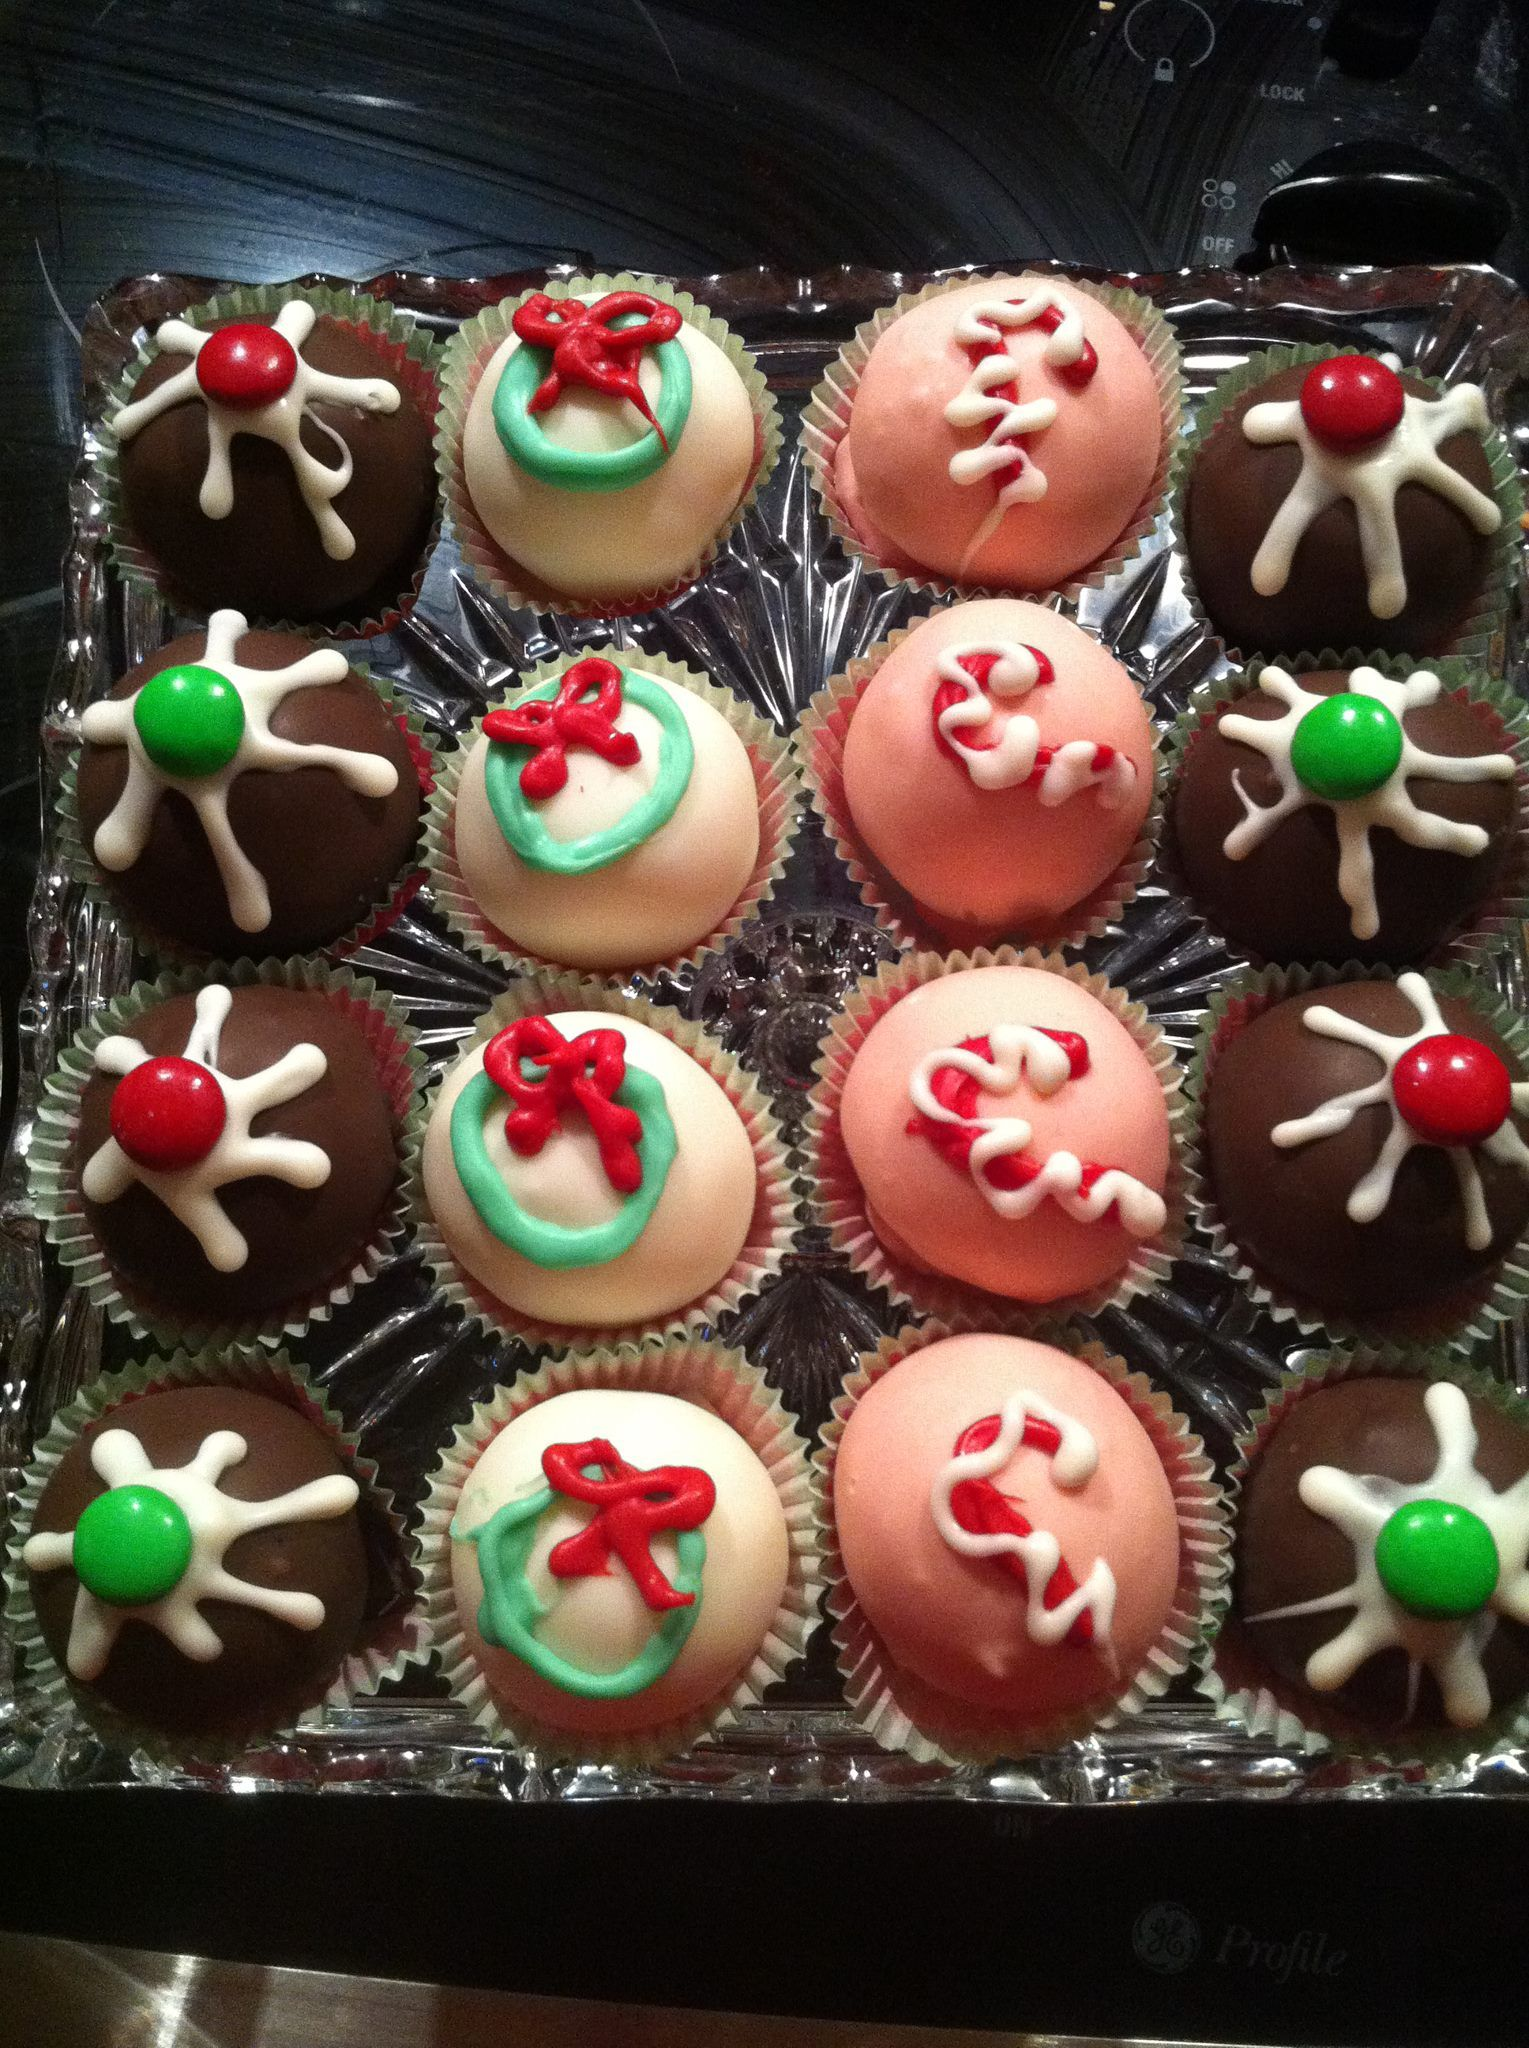 Cake Balls Decorated For Christmas : Christmas Cake Balls Ideas 49019 Christmas Cake Ball Decor